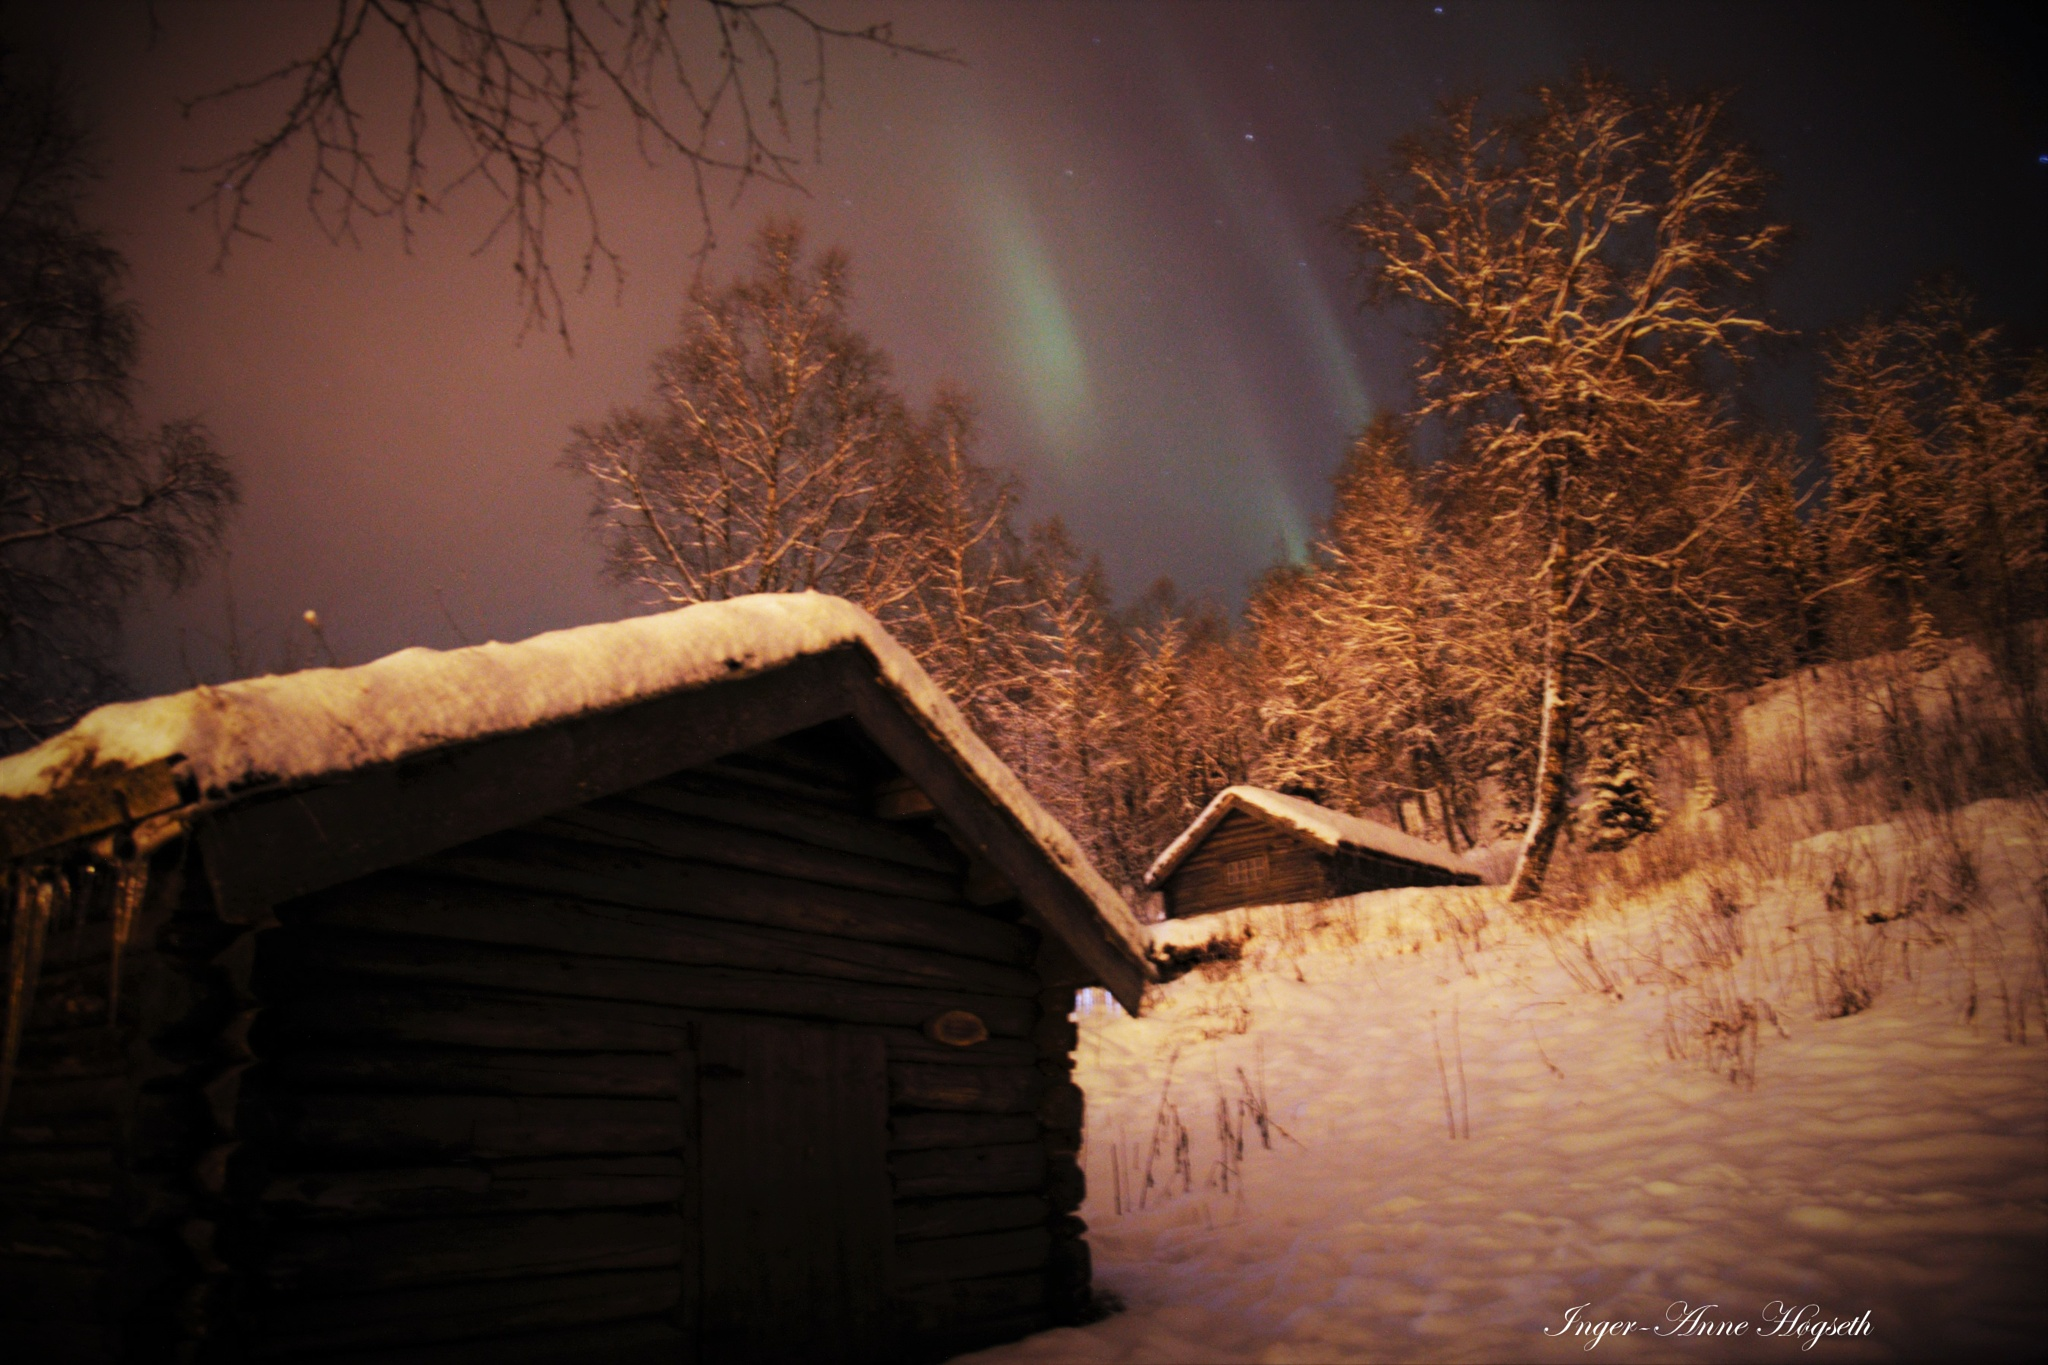 The old forge on Stenneset by IngerAnneHogseth